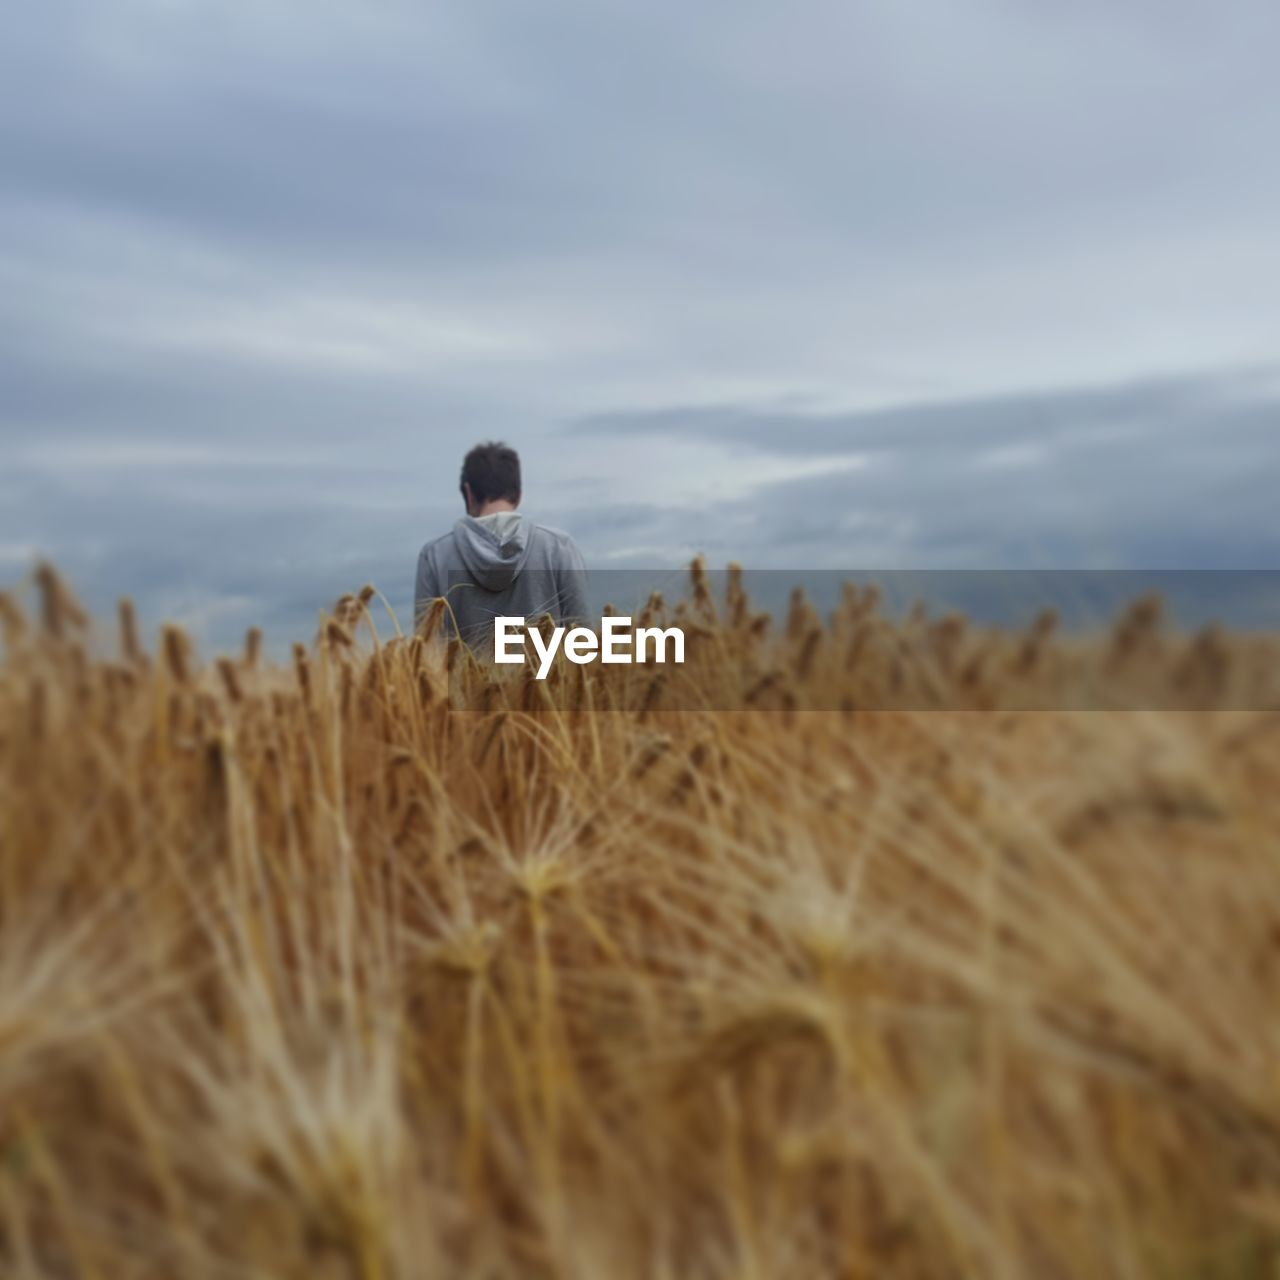 field, nature, one person, real people, agriculture, sky, outdoors, lifestyles, growth, day, beauty in nature, cereal plant, wheat, people